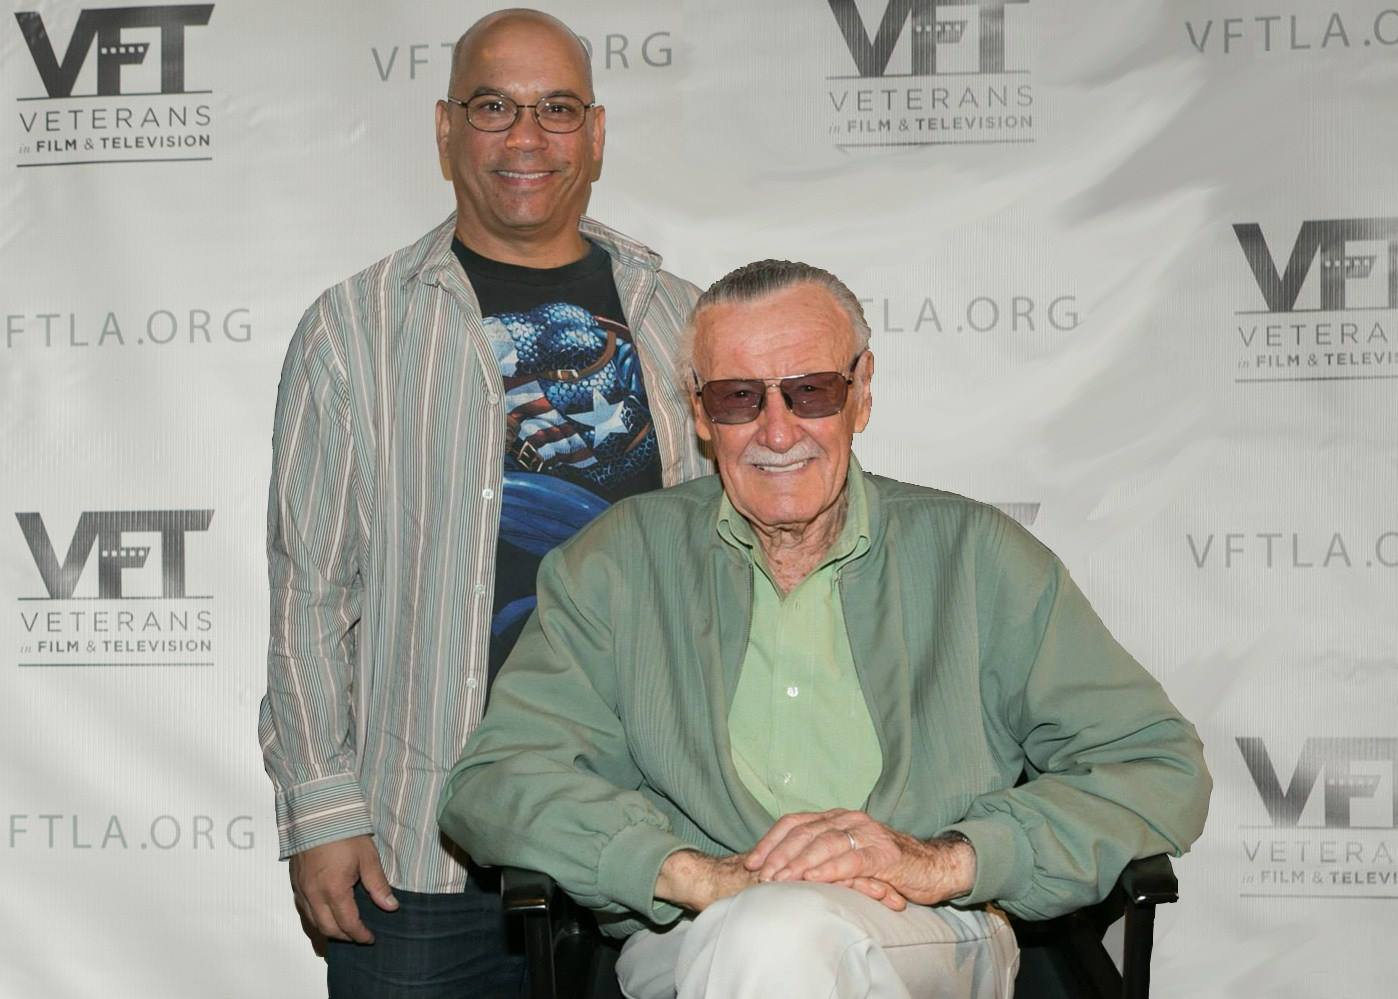 With Stan Lee at a meeting of Veterans in Film and Television